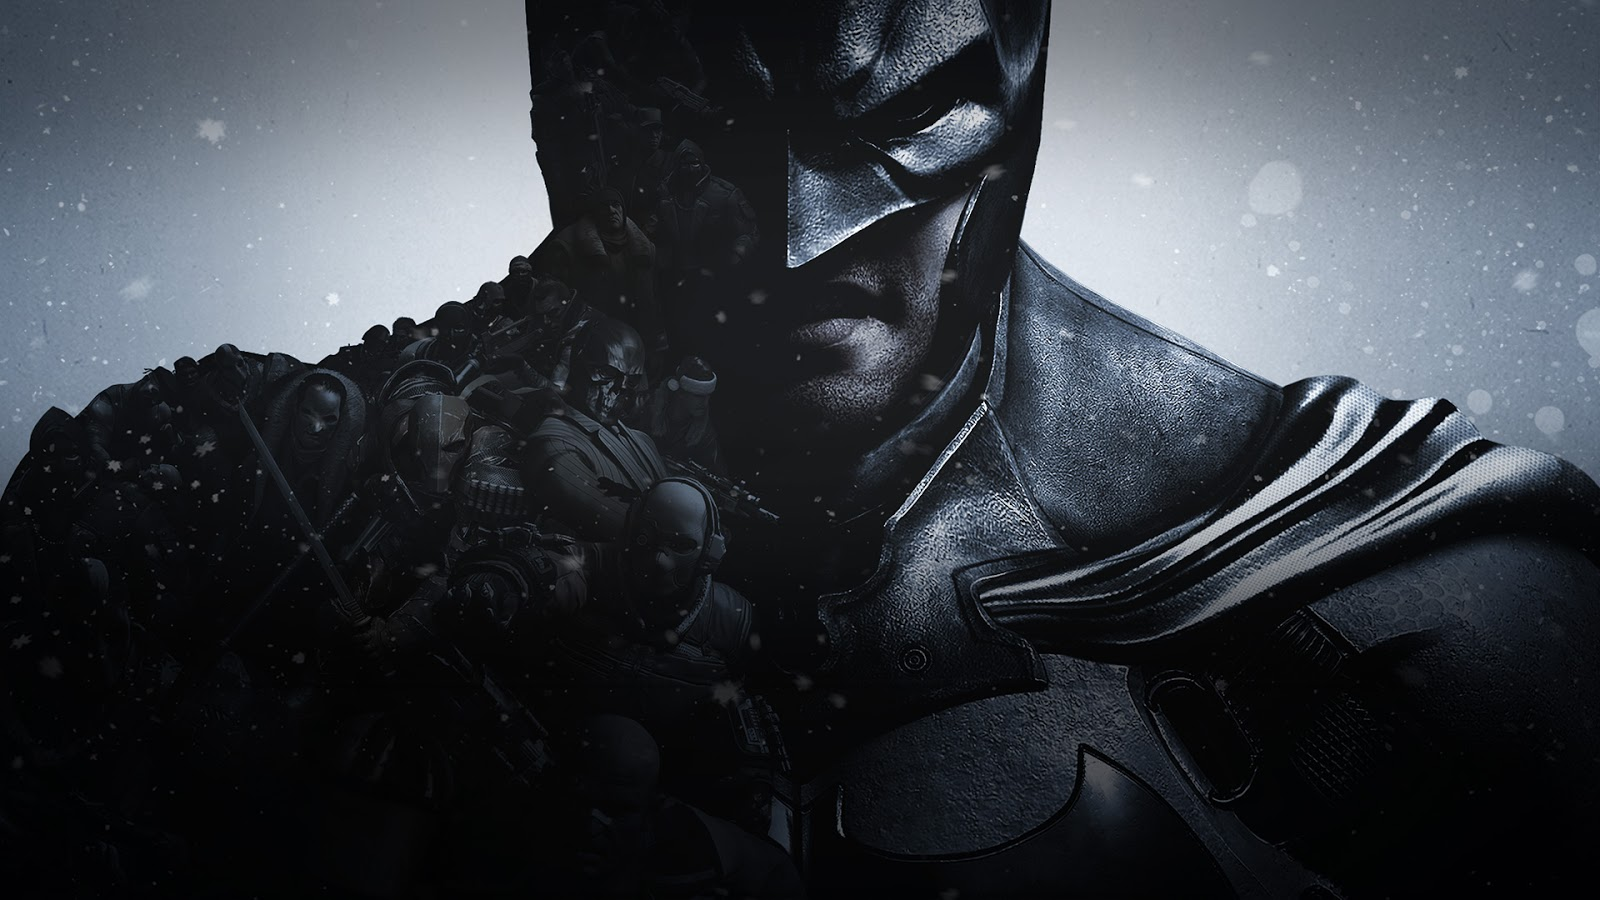 comic books movies games blog everything related to